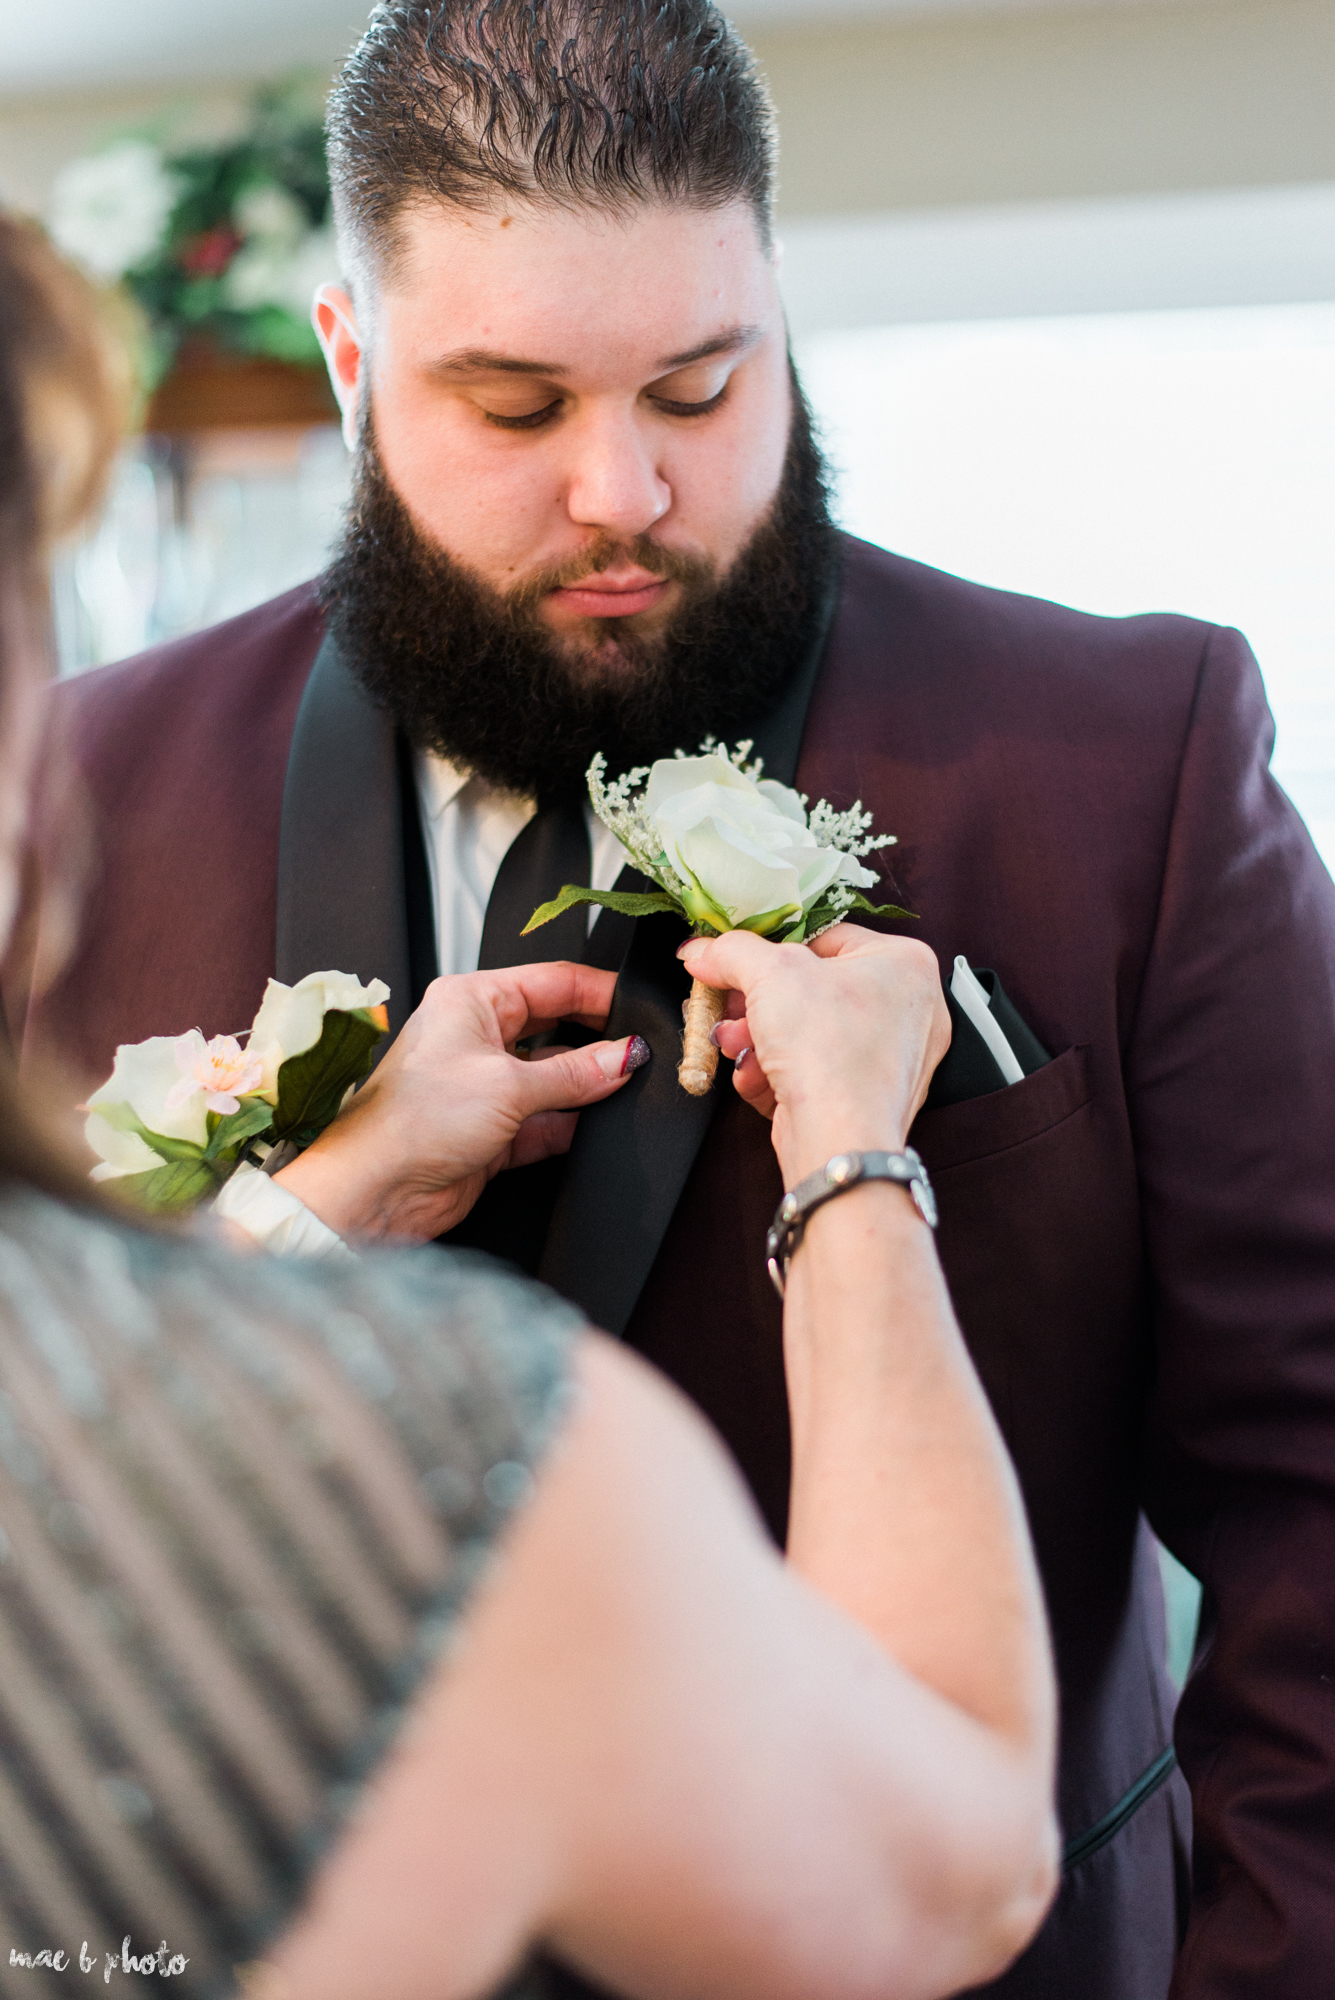 Amber & Kyle's Rustic Barn Wedding at SNPJ in Enon Valley, PA by Mae B Photo-39.jpg